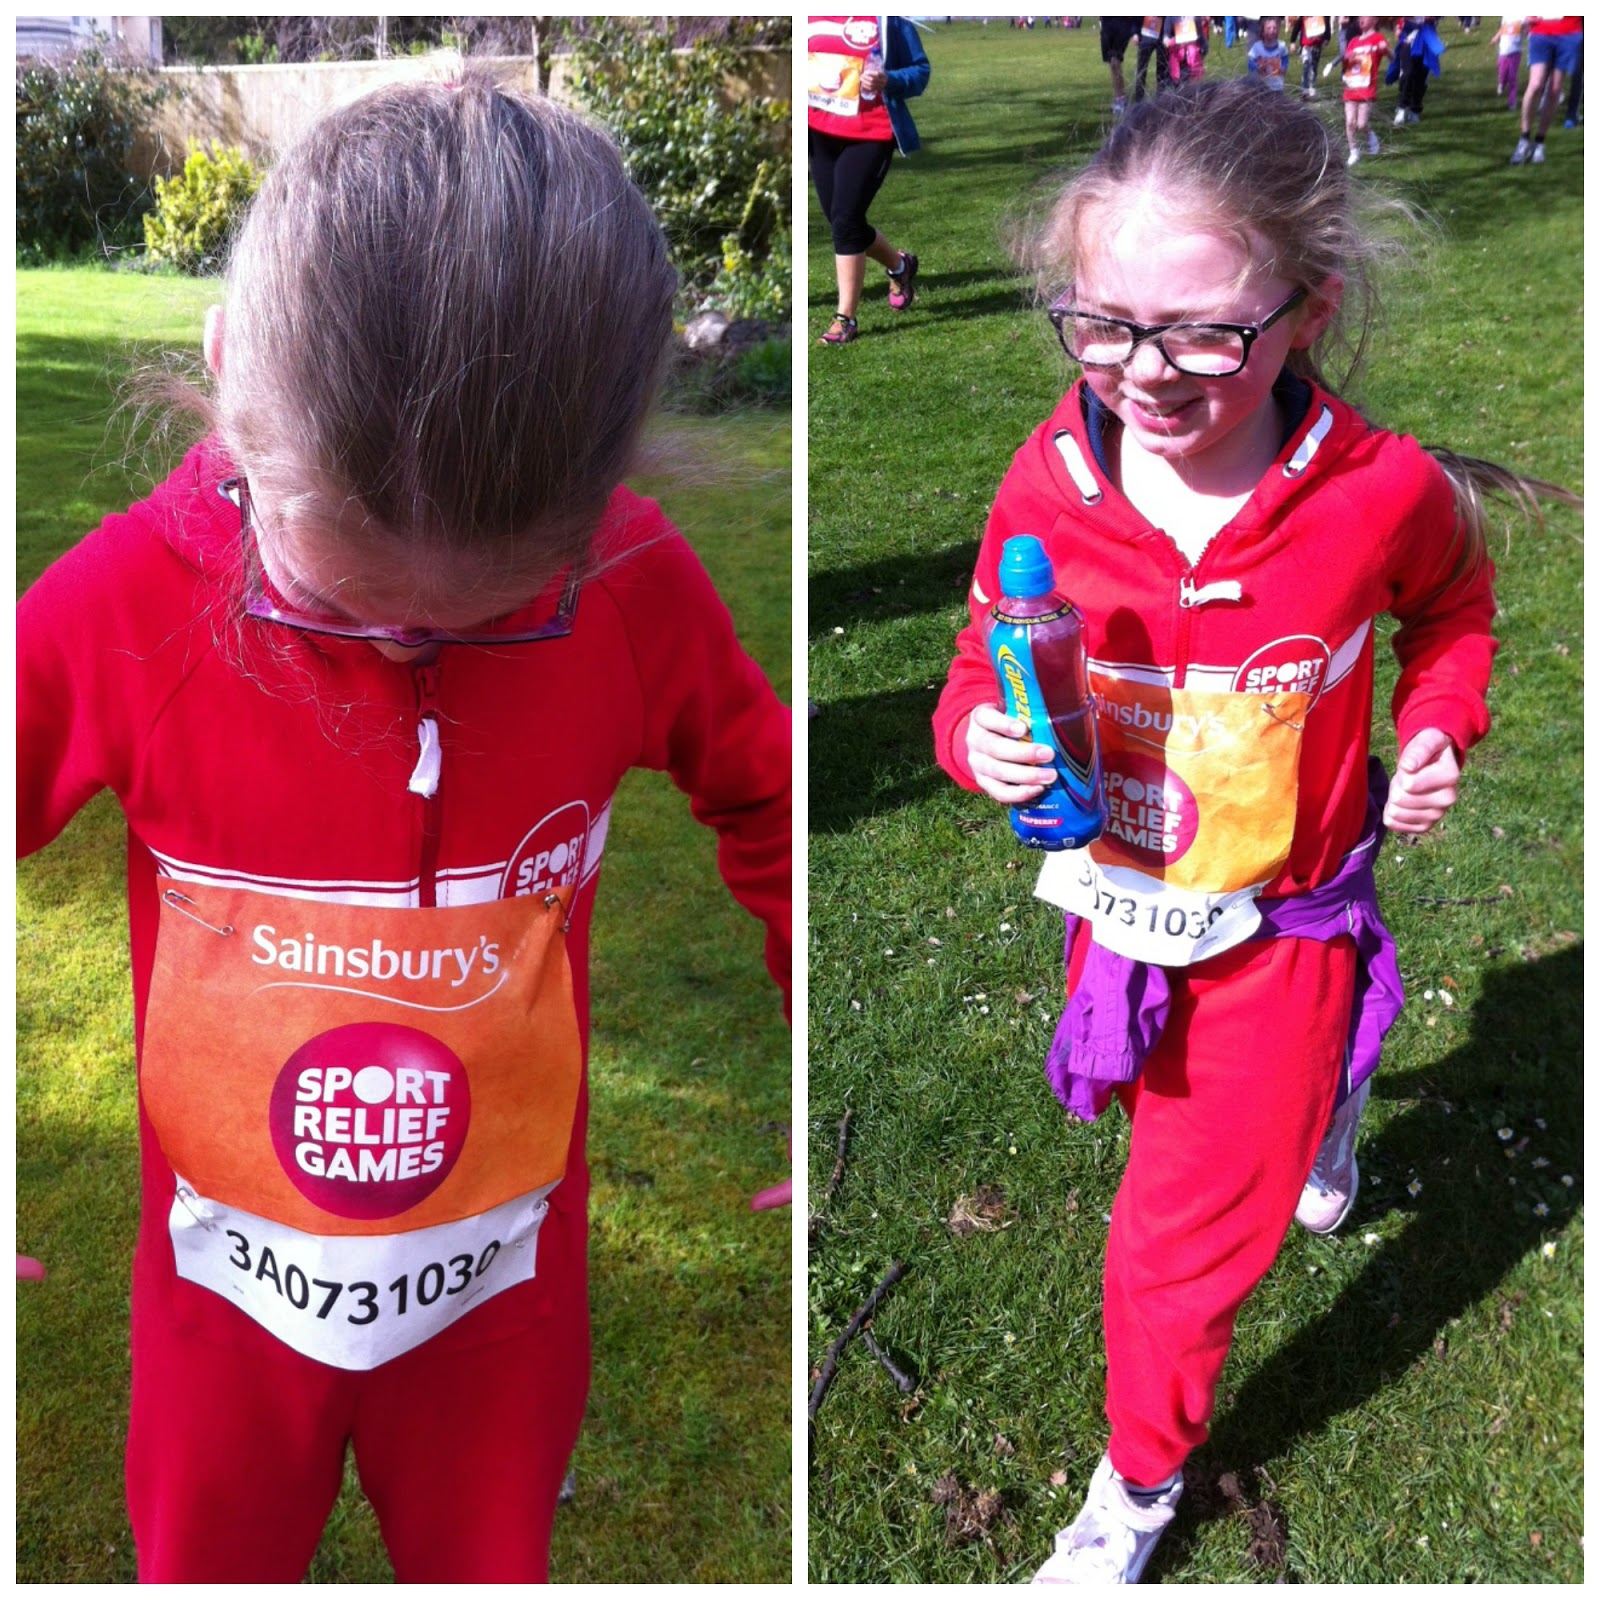 Sport-Relief-daughter-running-charity